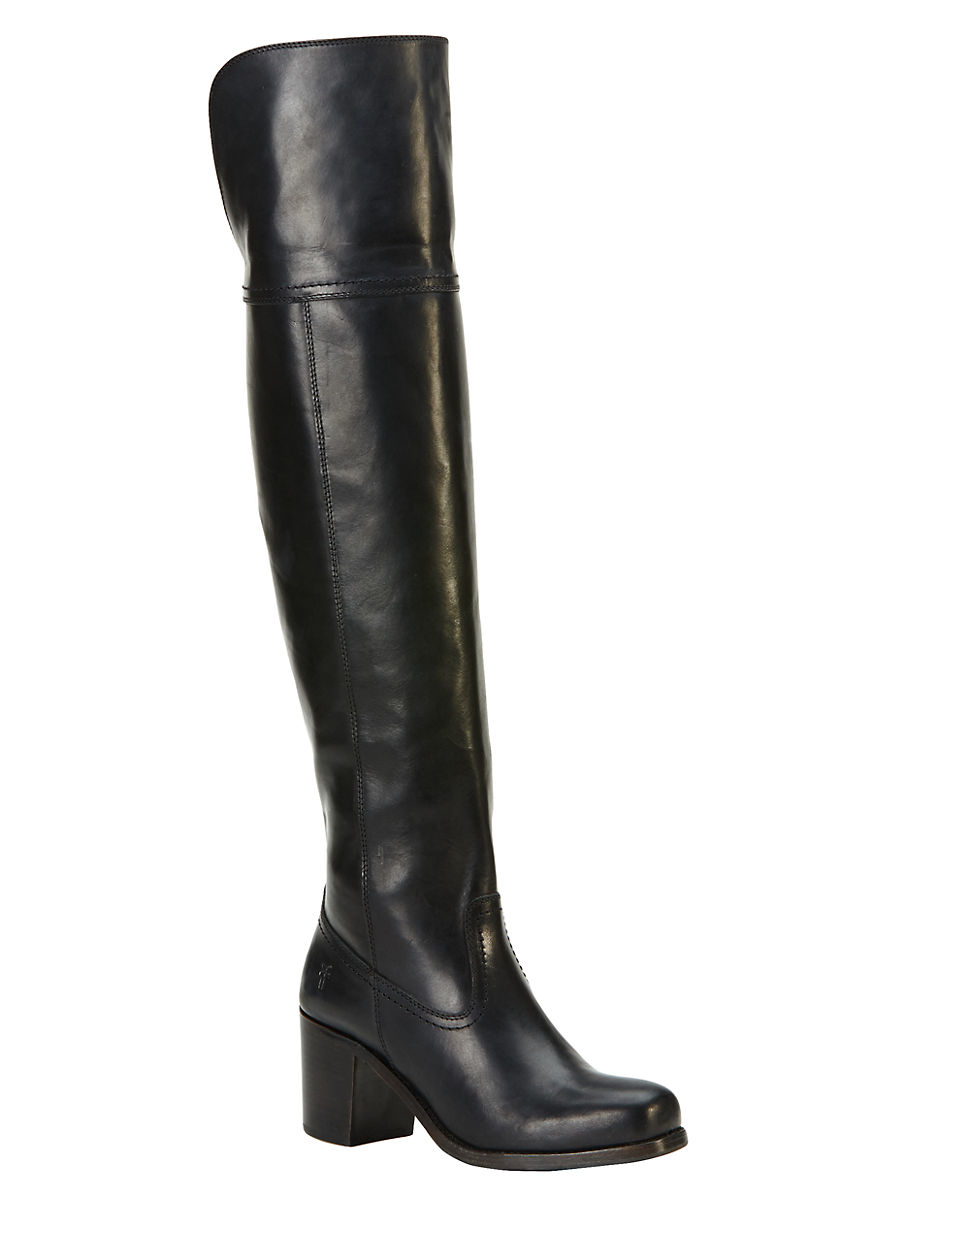 Frye Kendall Knee-high Leather Boots in Black - Save 6% | Lyst